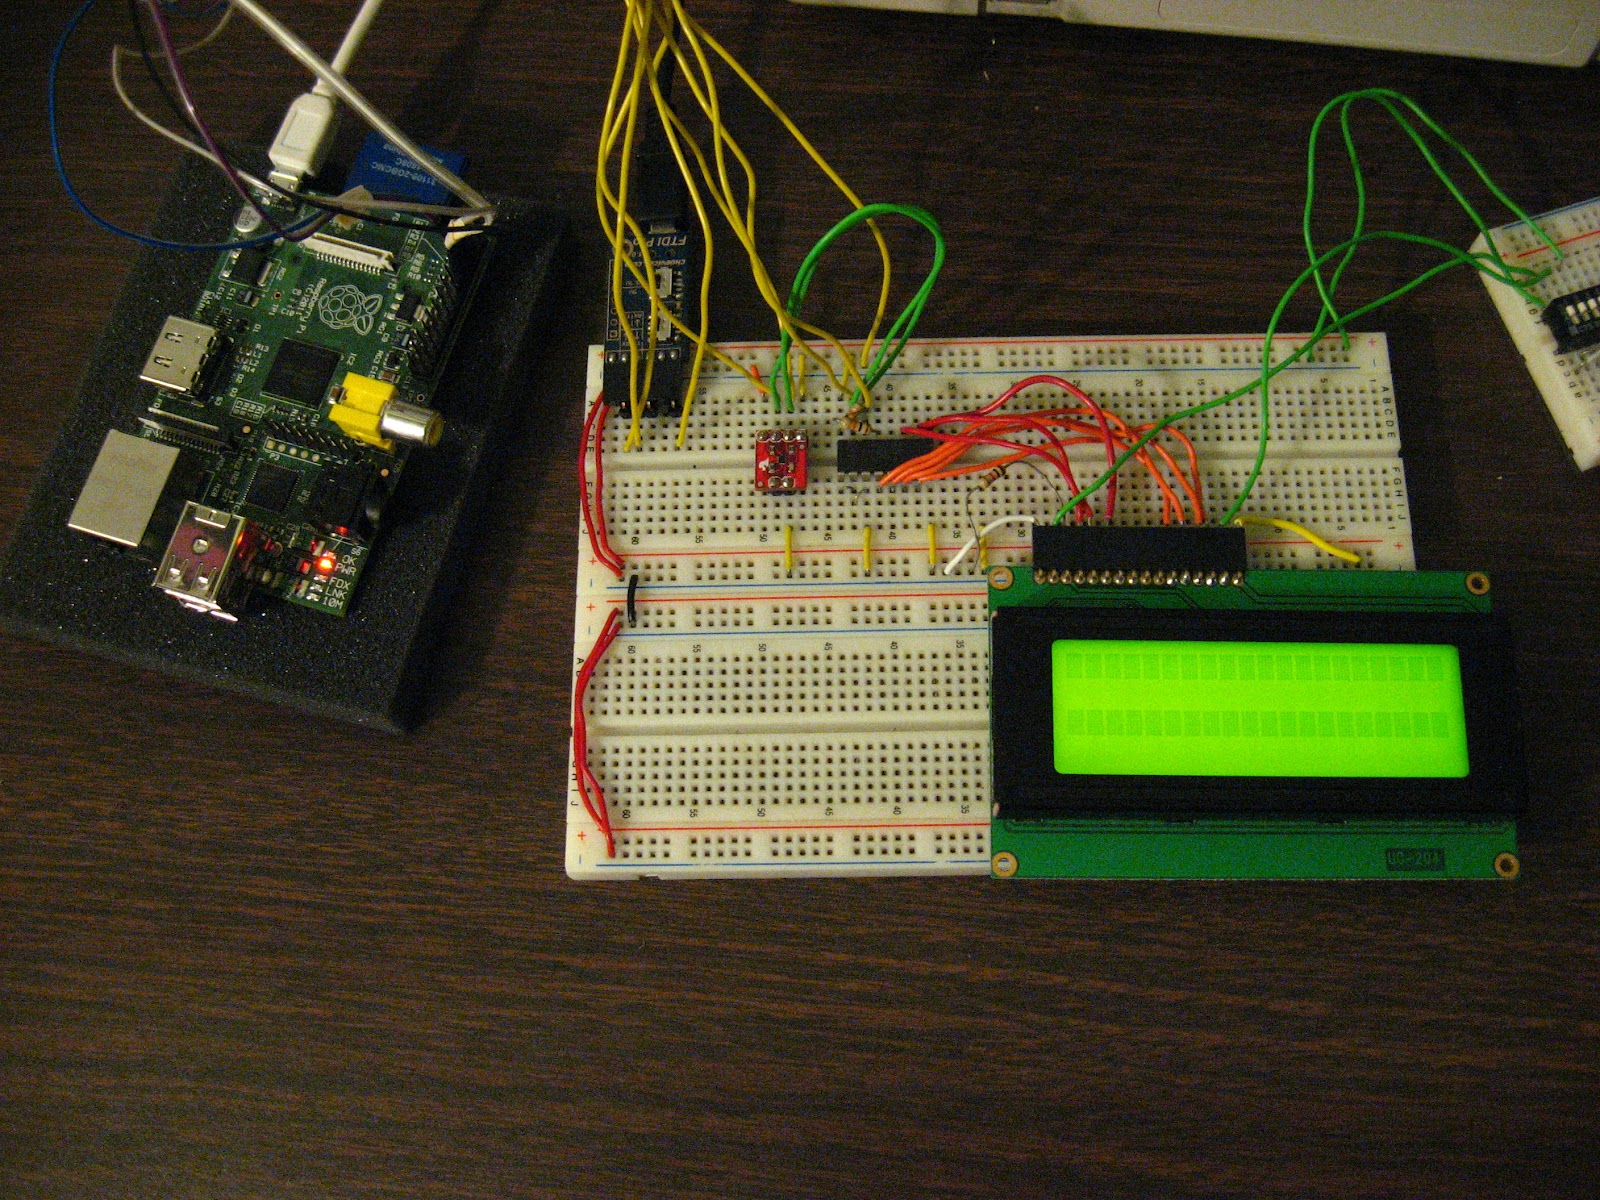 Tech2077s Tech Blog Running A Hd44780 Lcd Over I2c On The Wiringpi Python Serial Example Raspberry Pi Wired Up To Bridge Pcf8574 Port Expander And Tmp102 12bit Temperature Sensor